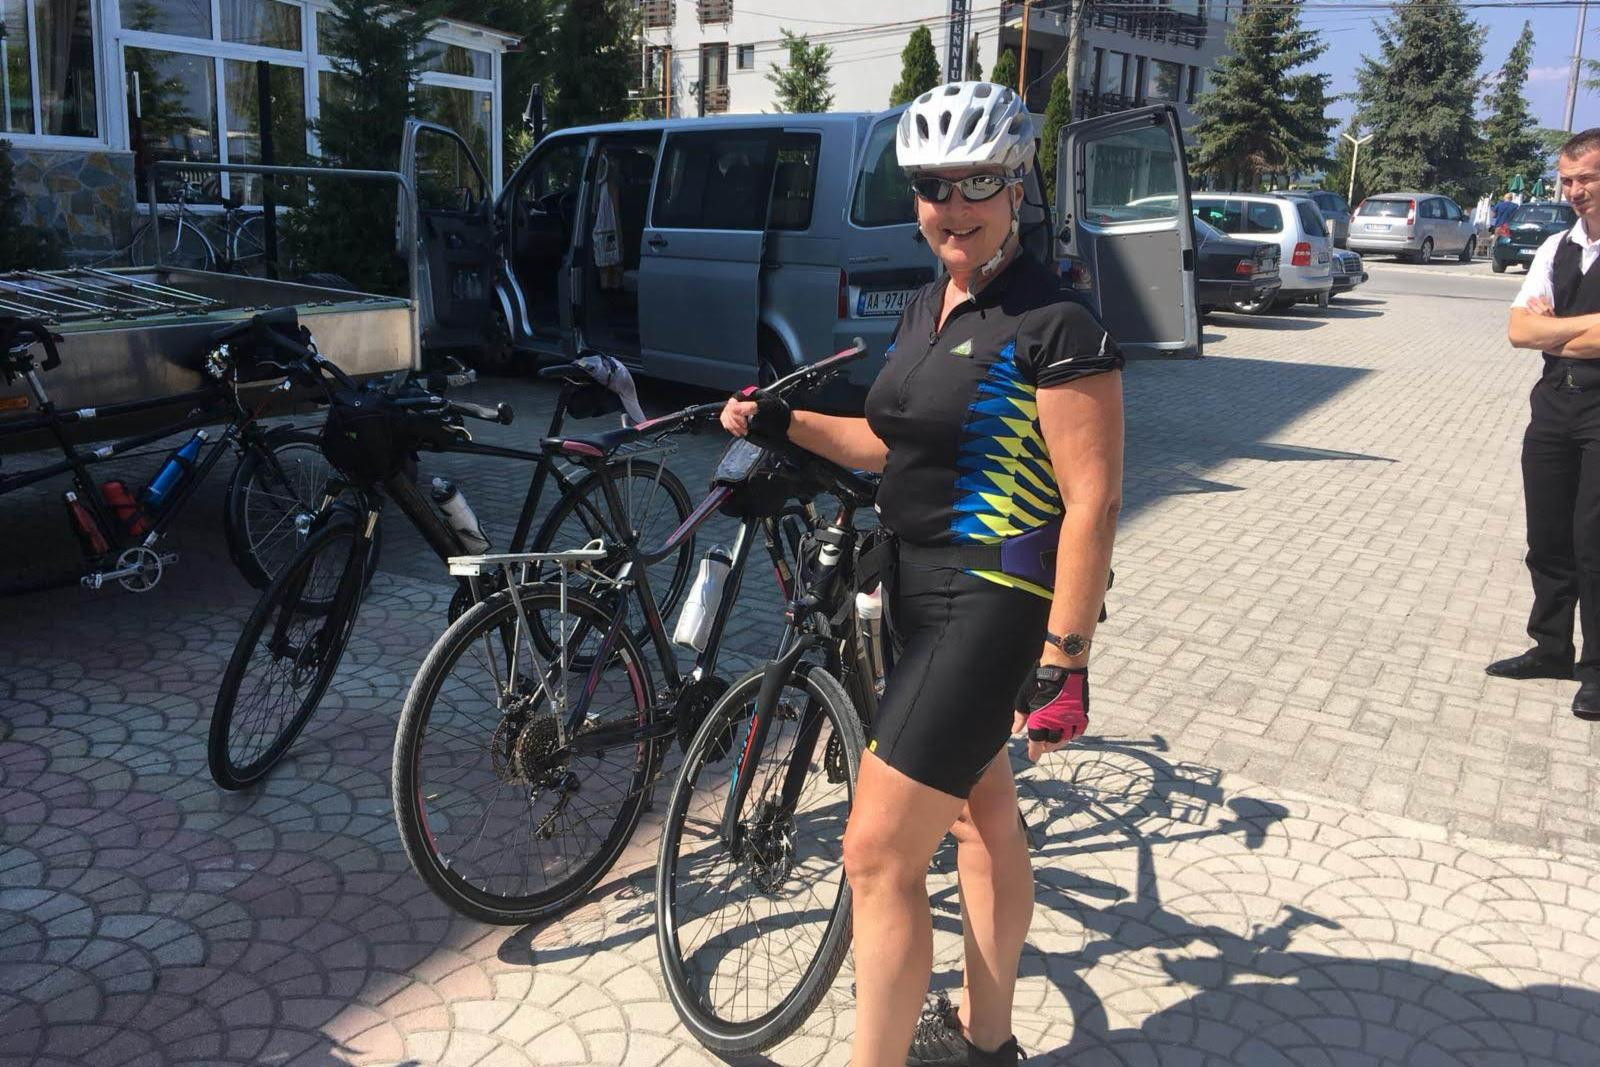 Marie poses with her bicycle on holiday whilst cycling training